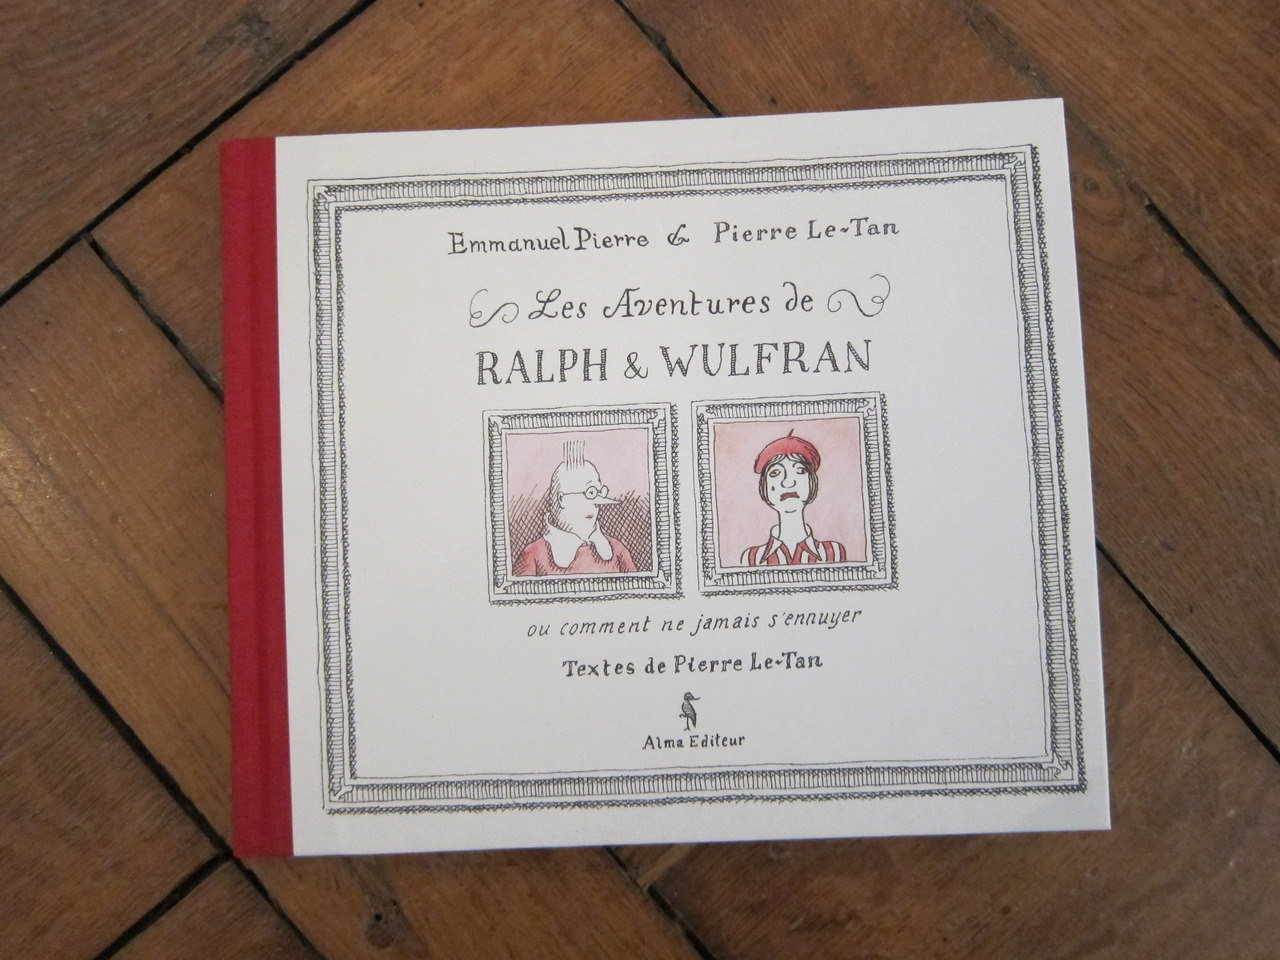 Les Aventures de Ralph & Wulfran ou comment ne jamais s'ennuyer, a new book by Pierre Le-Tan and Emmanuel Pierre available here, here and  here. (Or if you're in France, at your local bookshop).